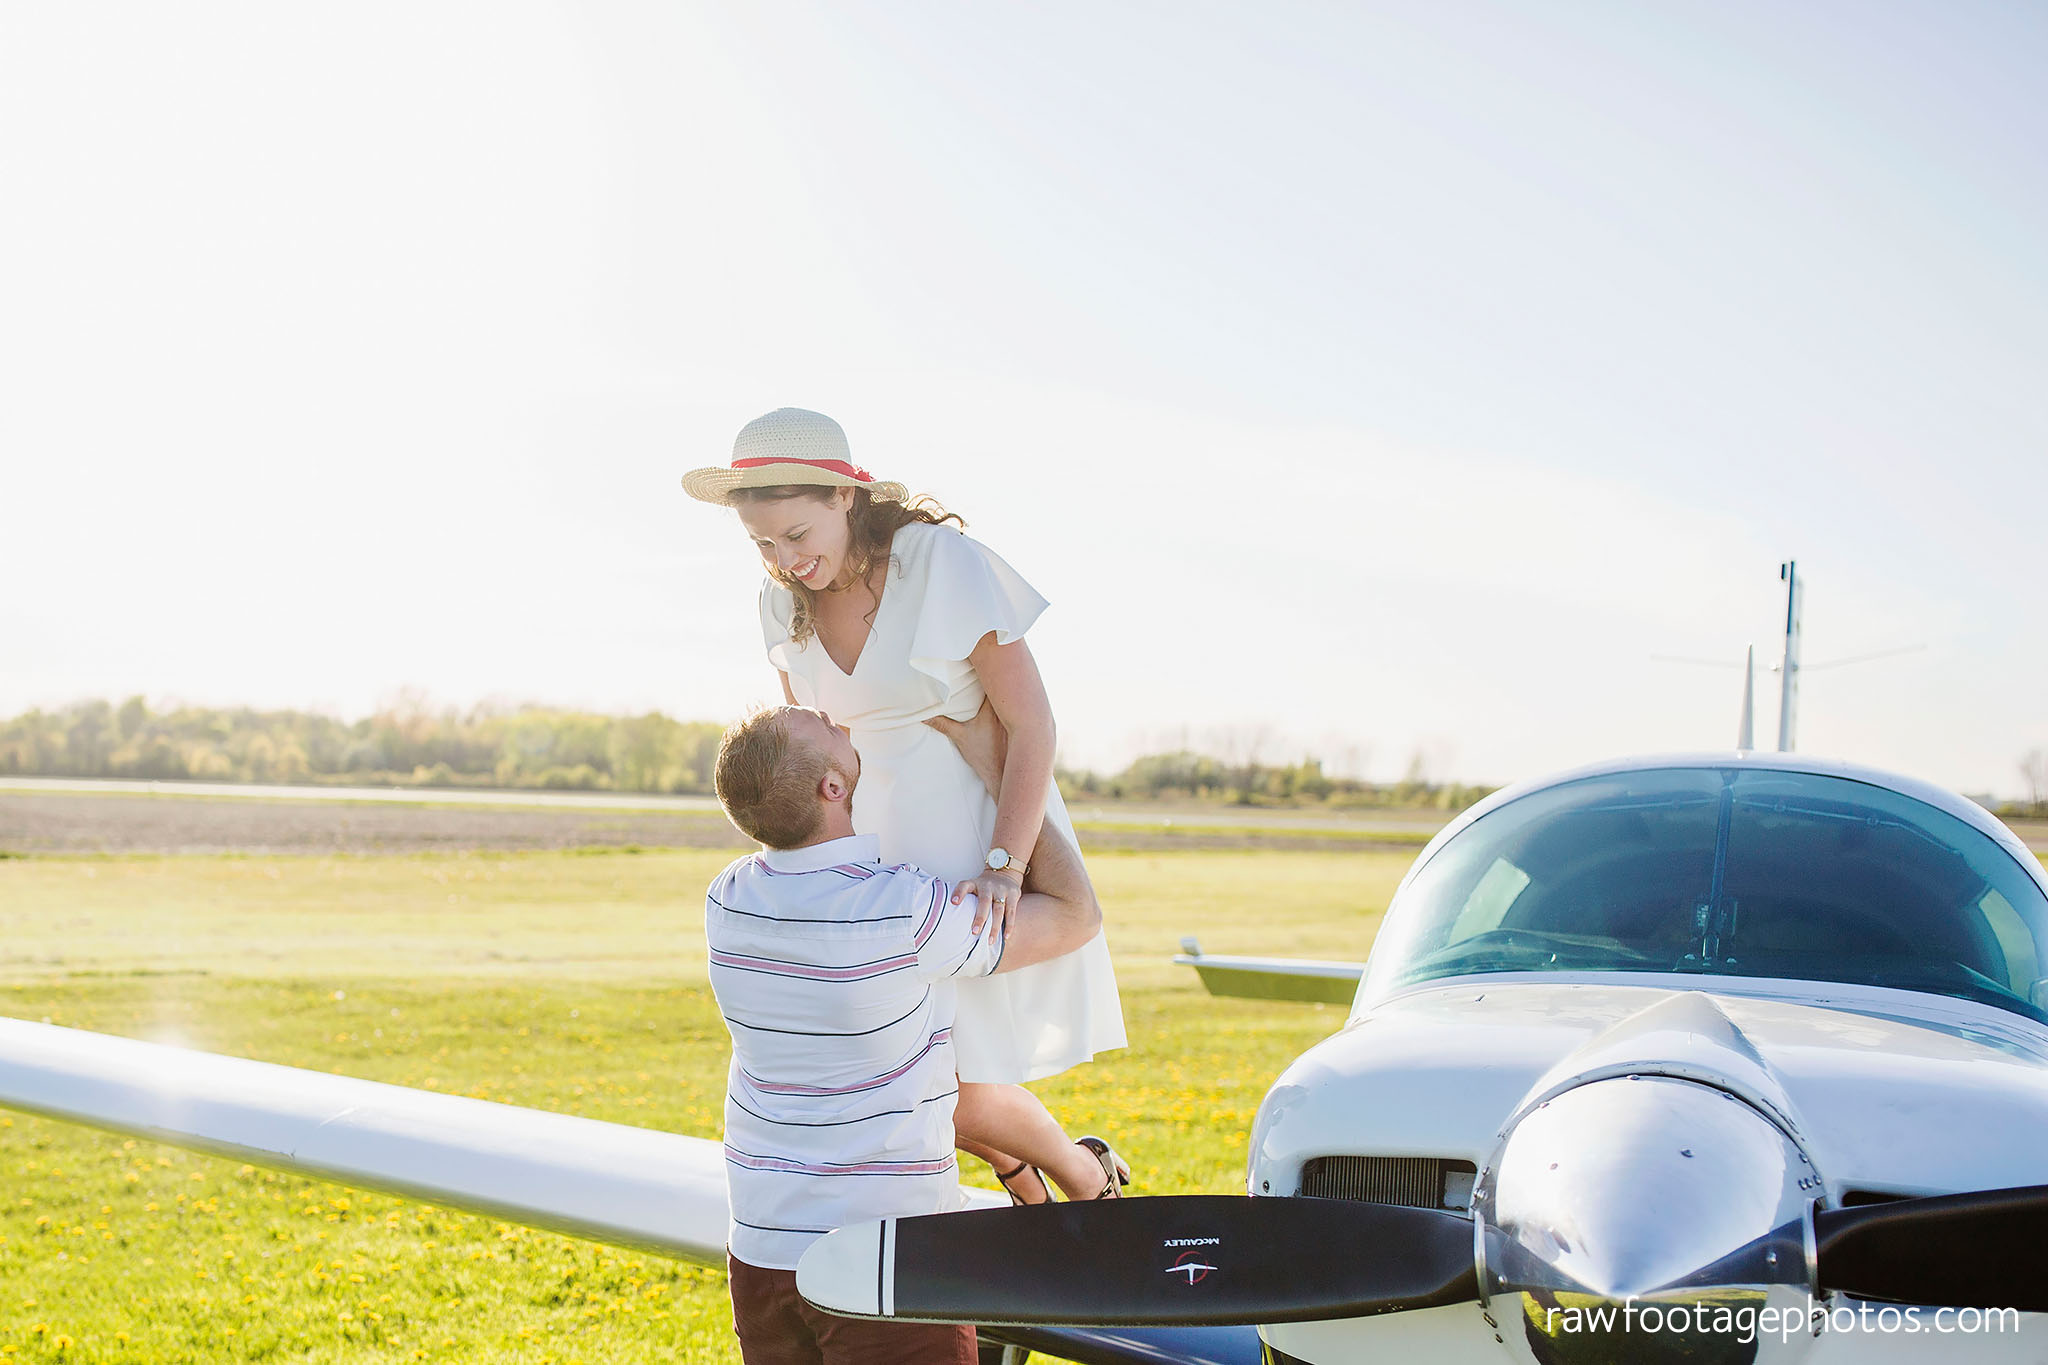 london_ontario_wedding_photographer-raw_footage_photography-engagement_session-airport_session-airplane-balloons-apple_orchard-spring_blooms-apple_blossoms007.jpg